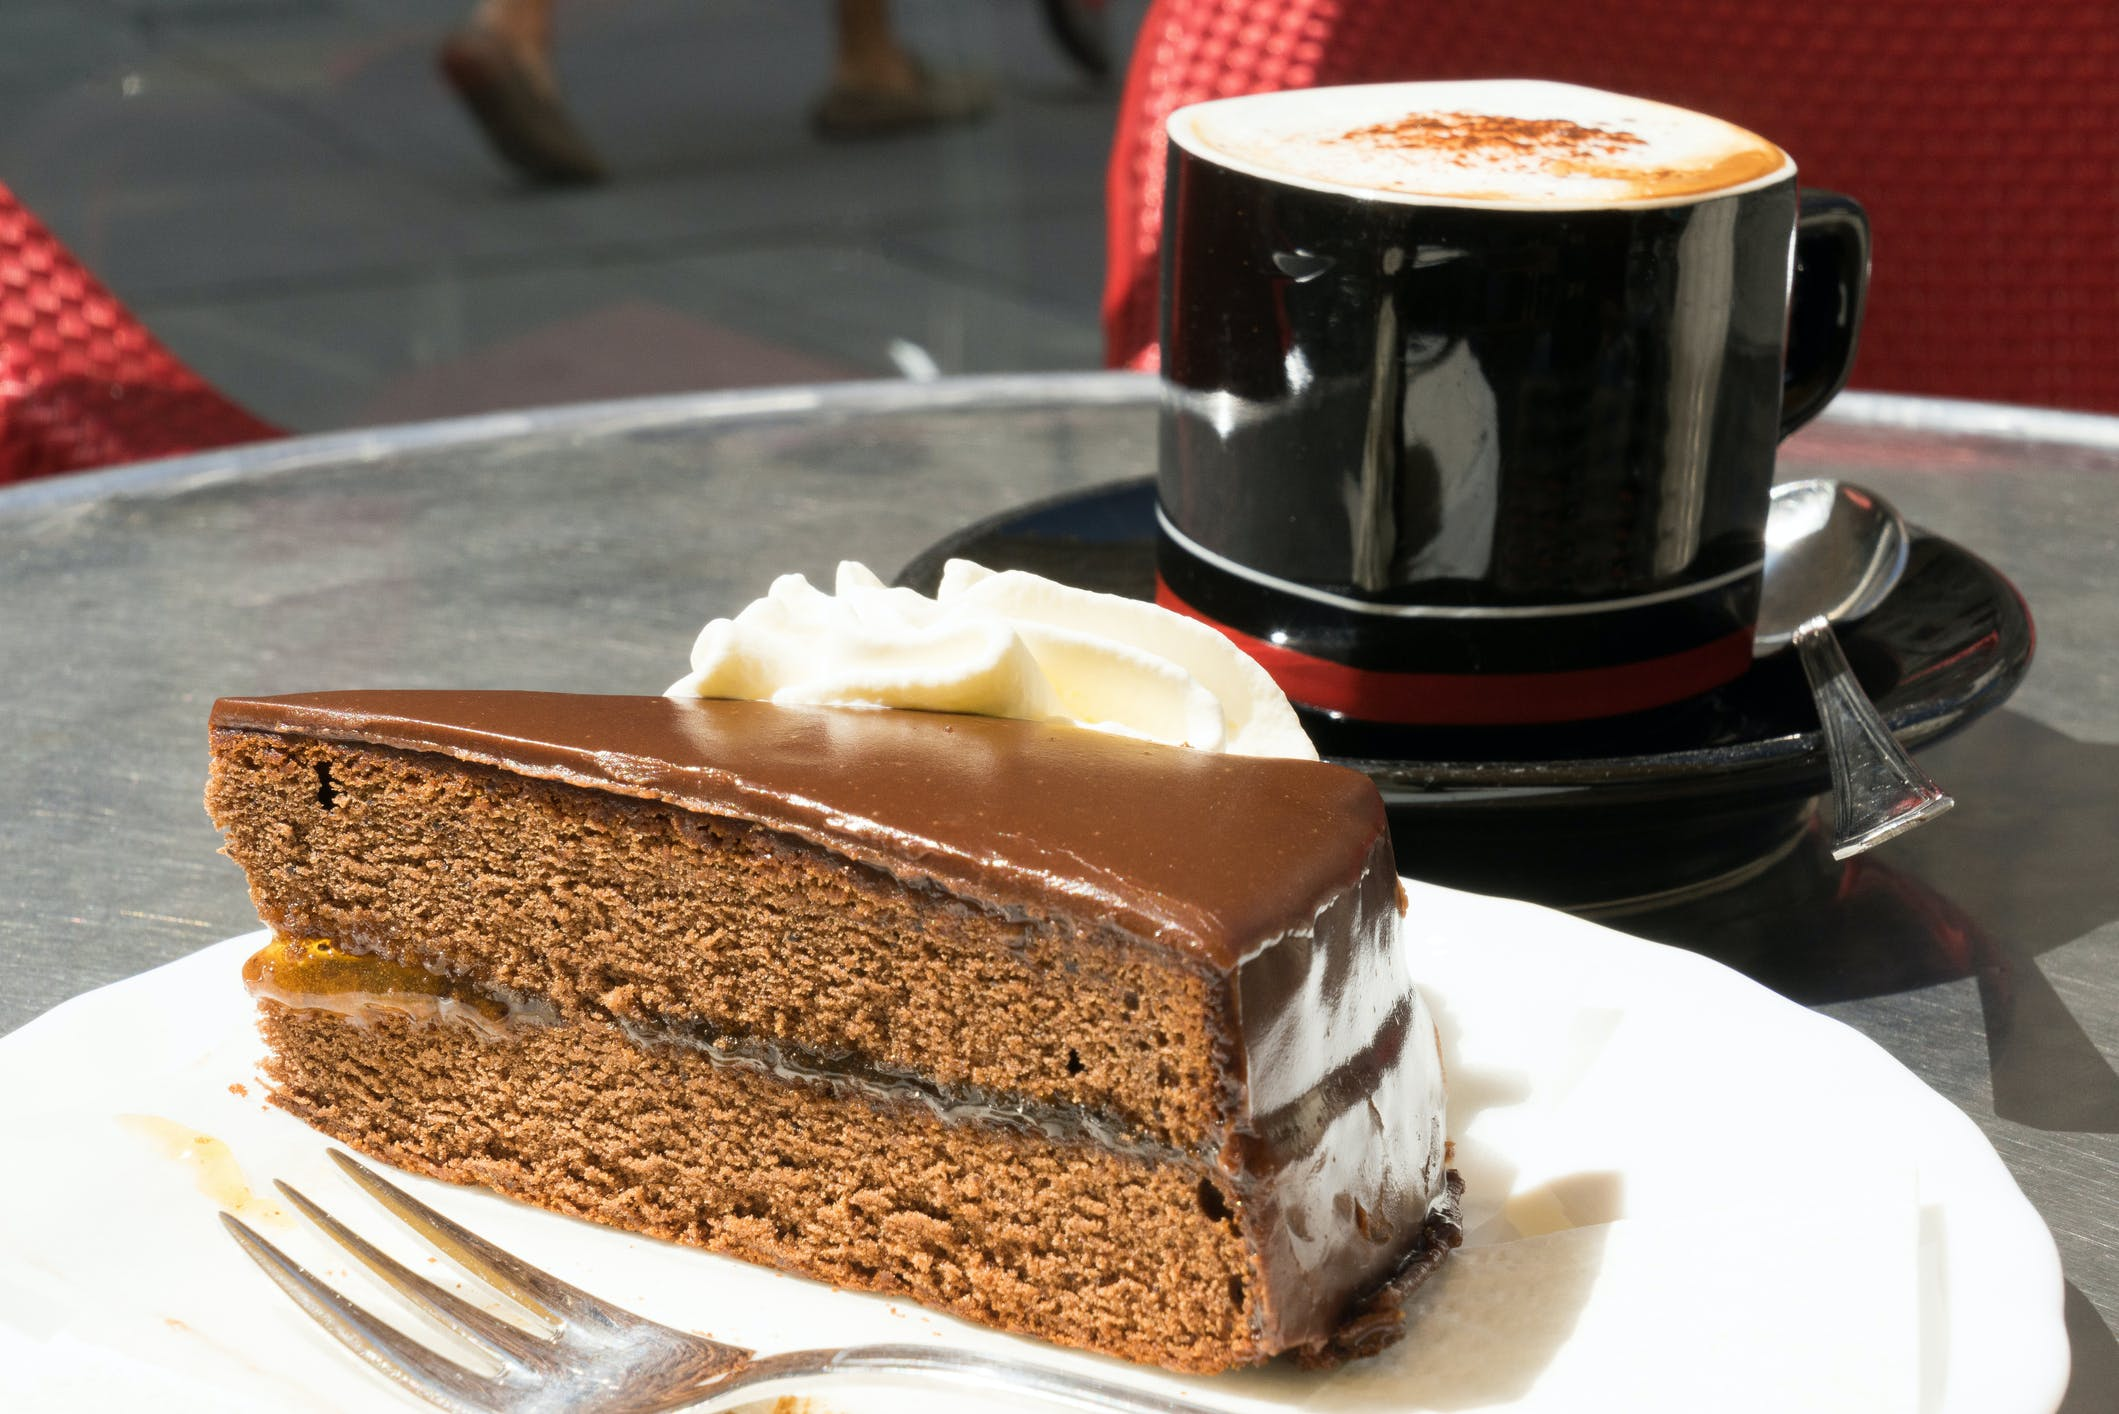 Sachertorte cake from AmaWaterways